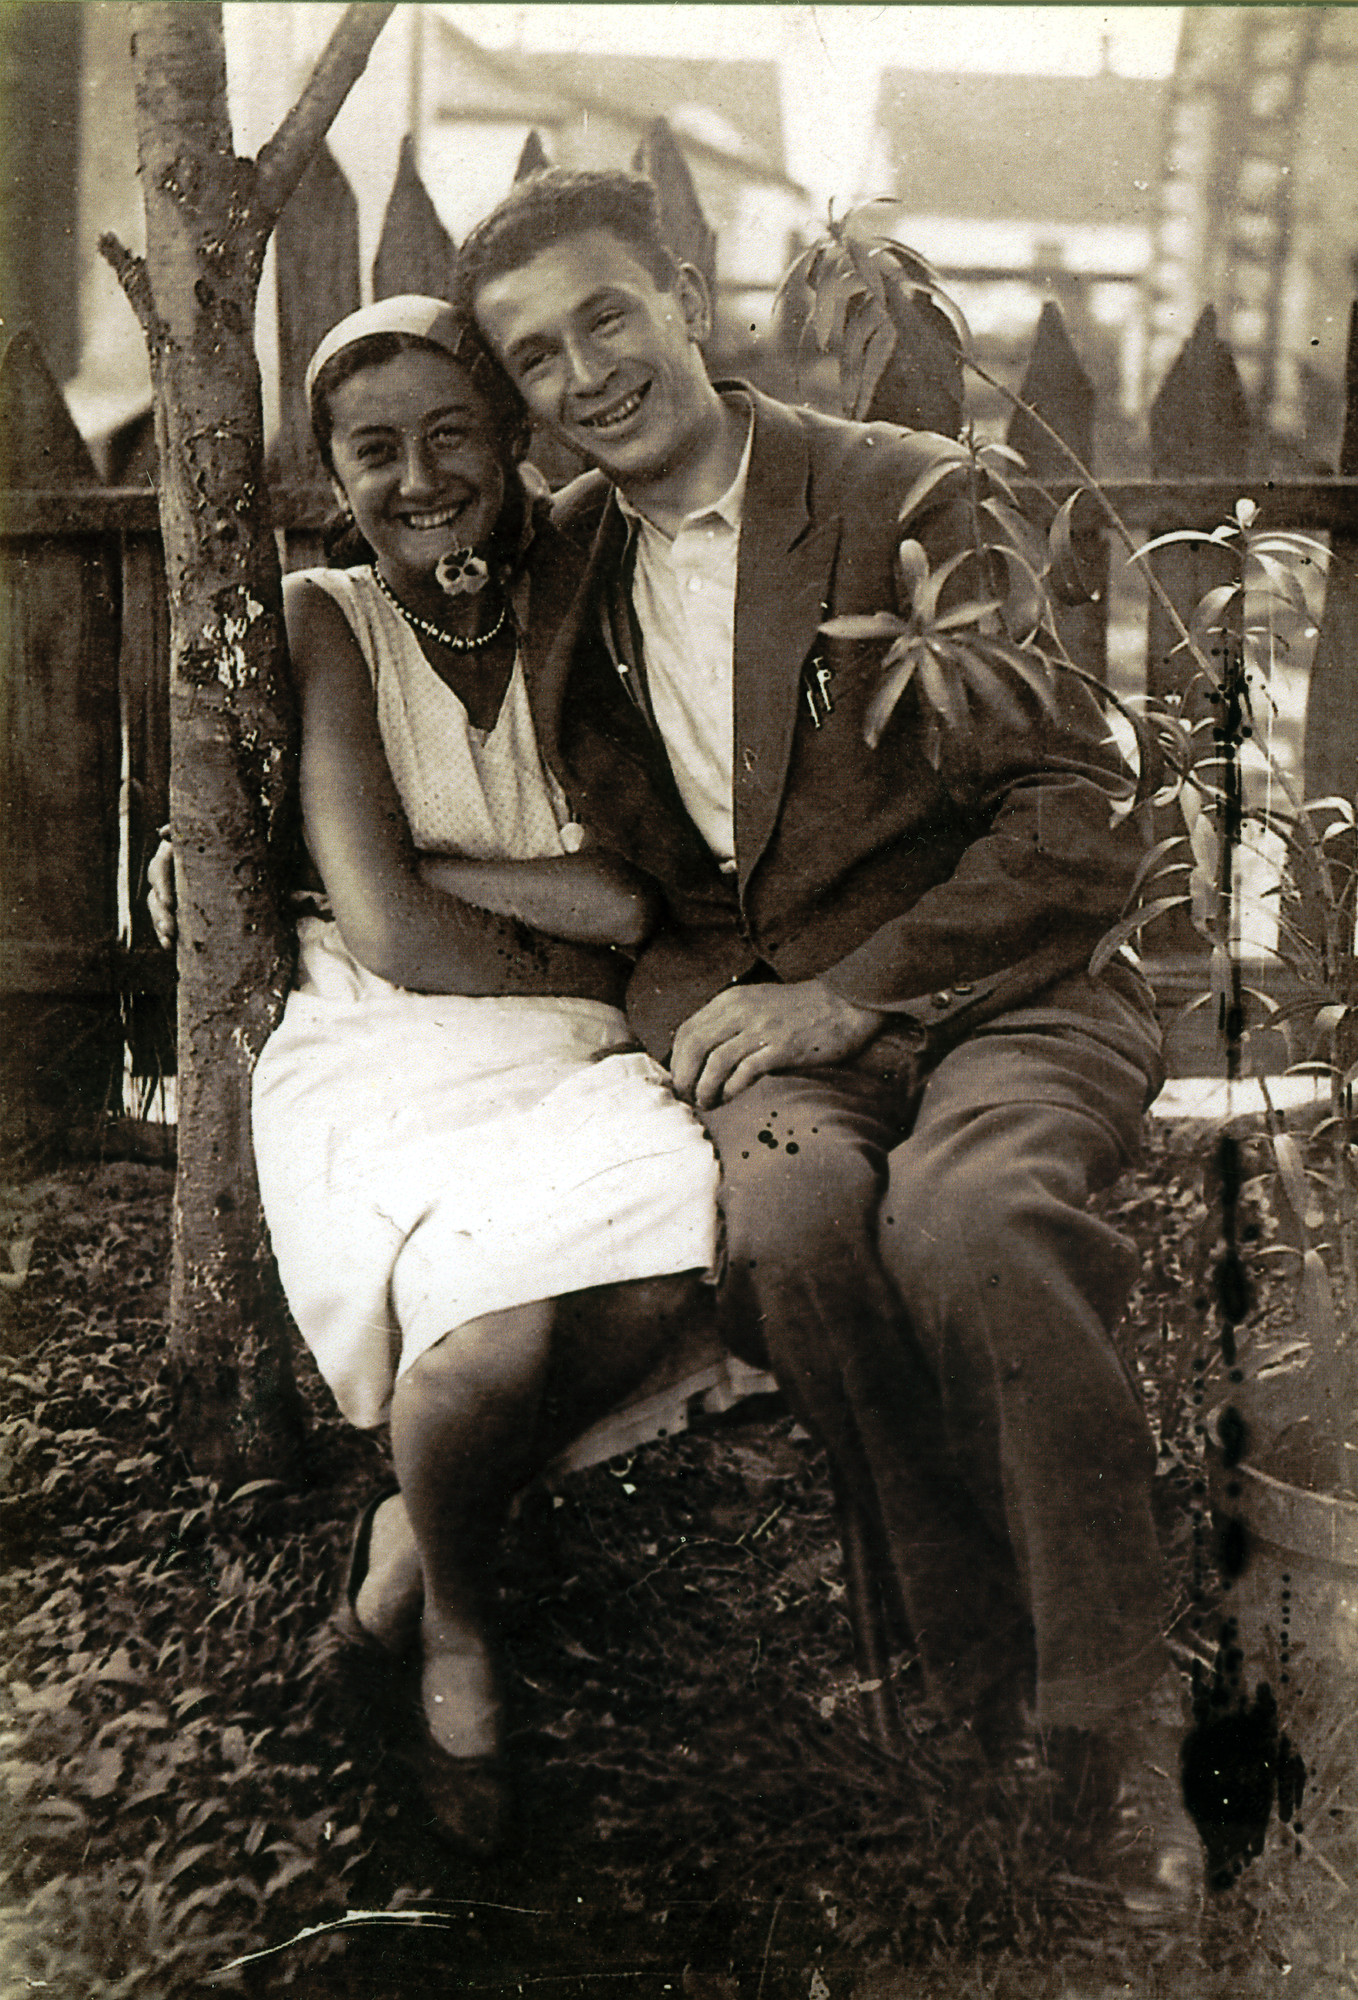 Riva and Dimo Szrajer pose outside on a bench.